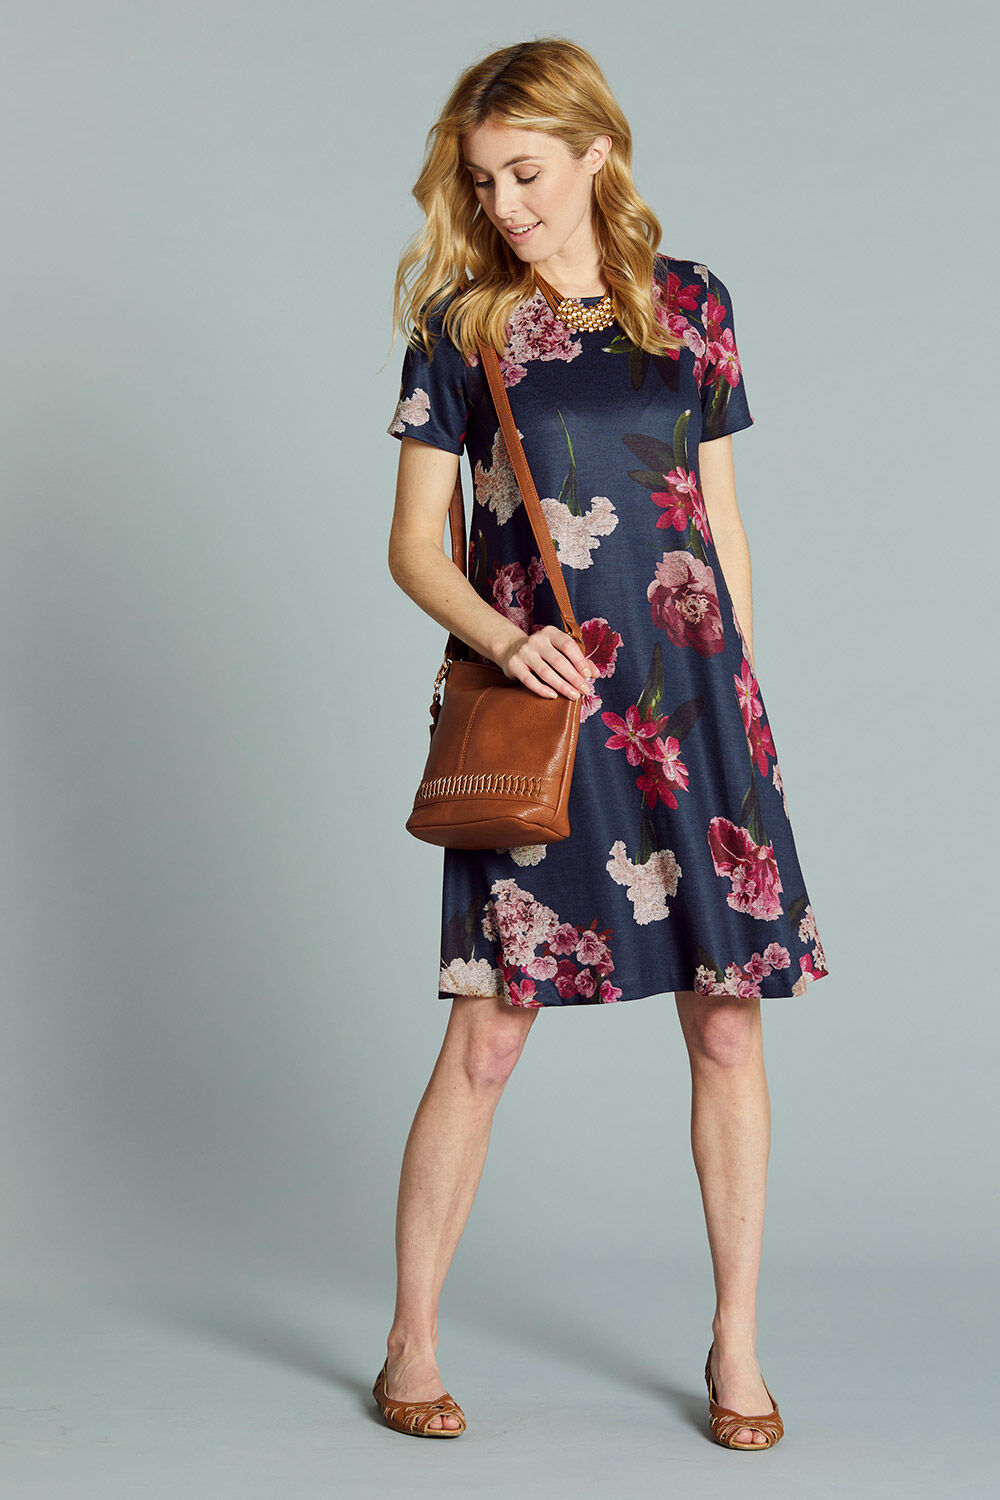 2db7459ec80a Soft Touch Printed Swing Dress. Hover to zoom